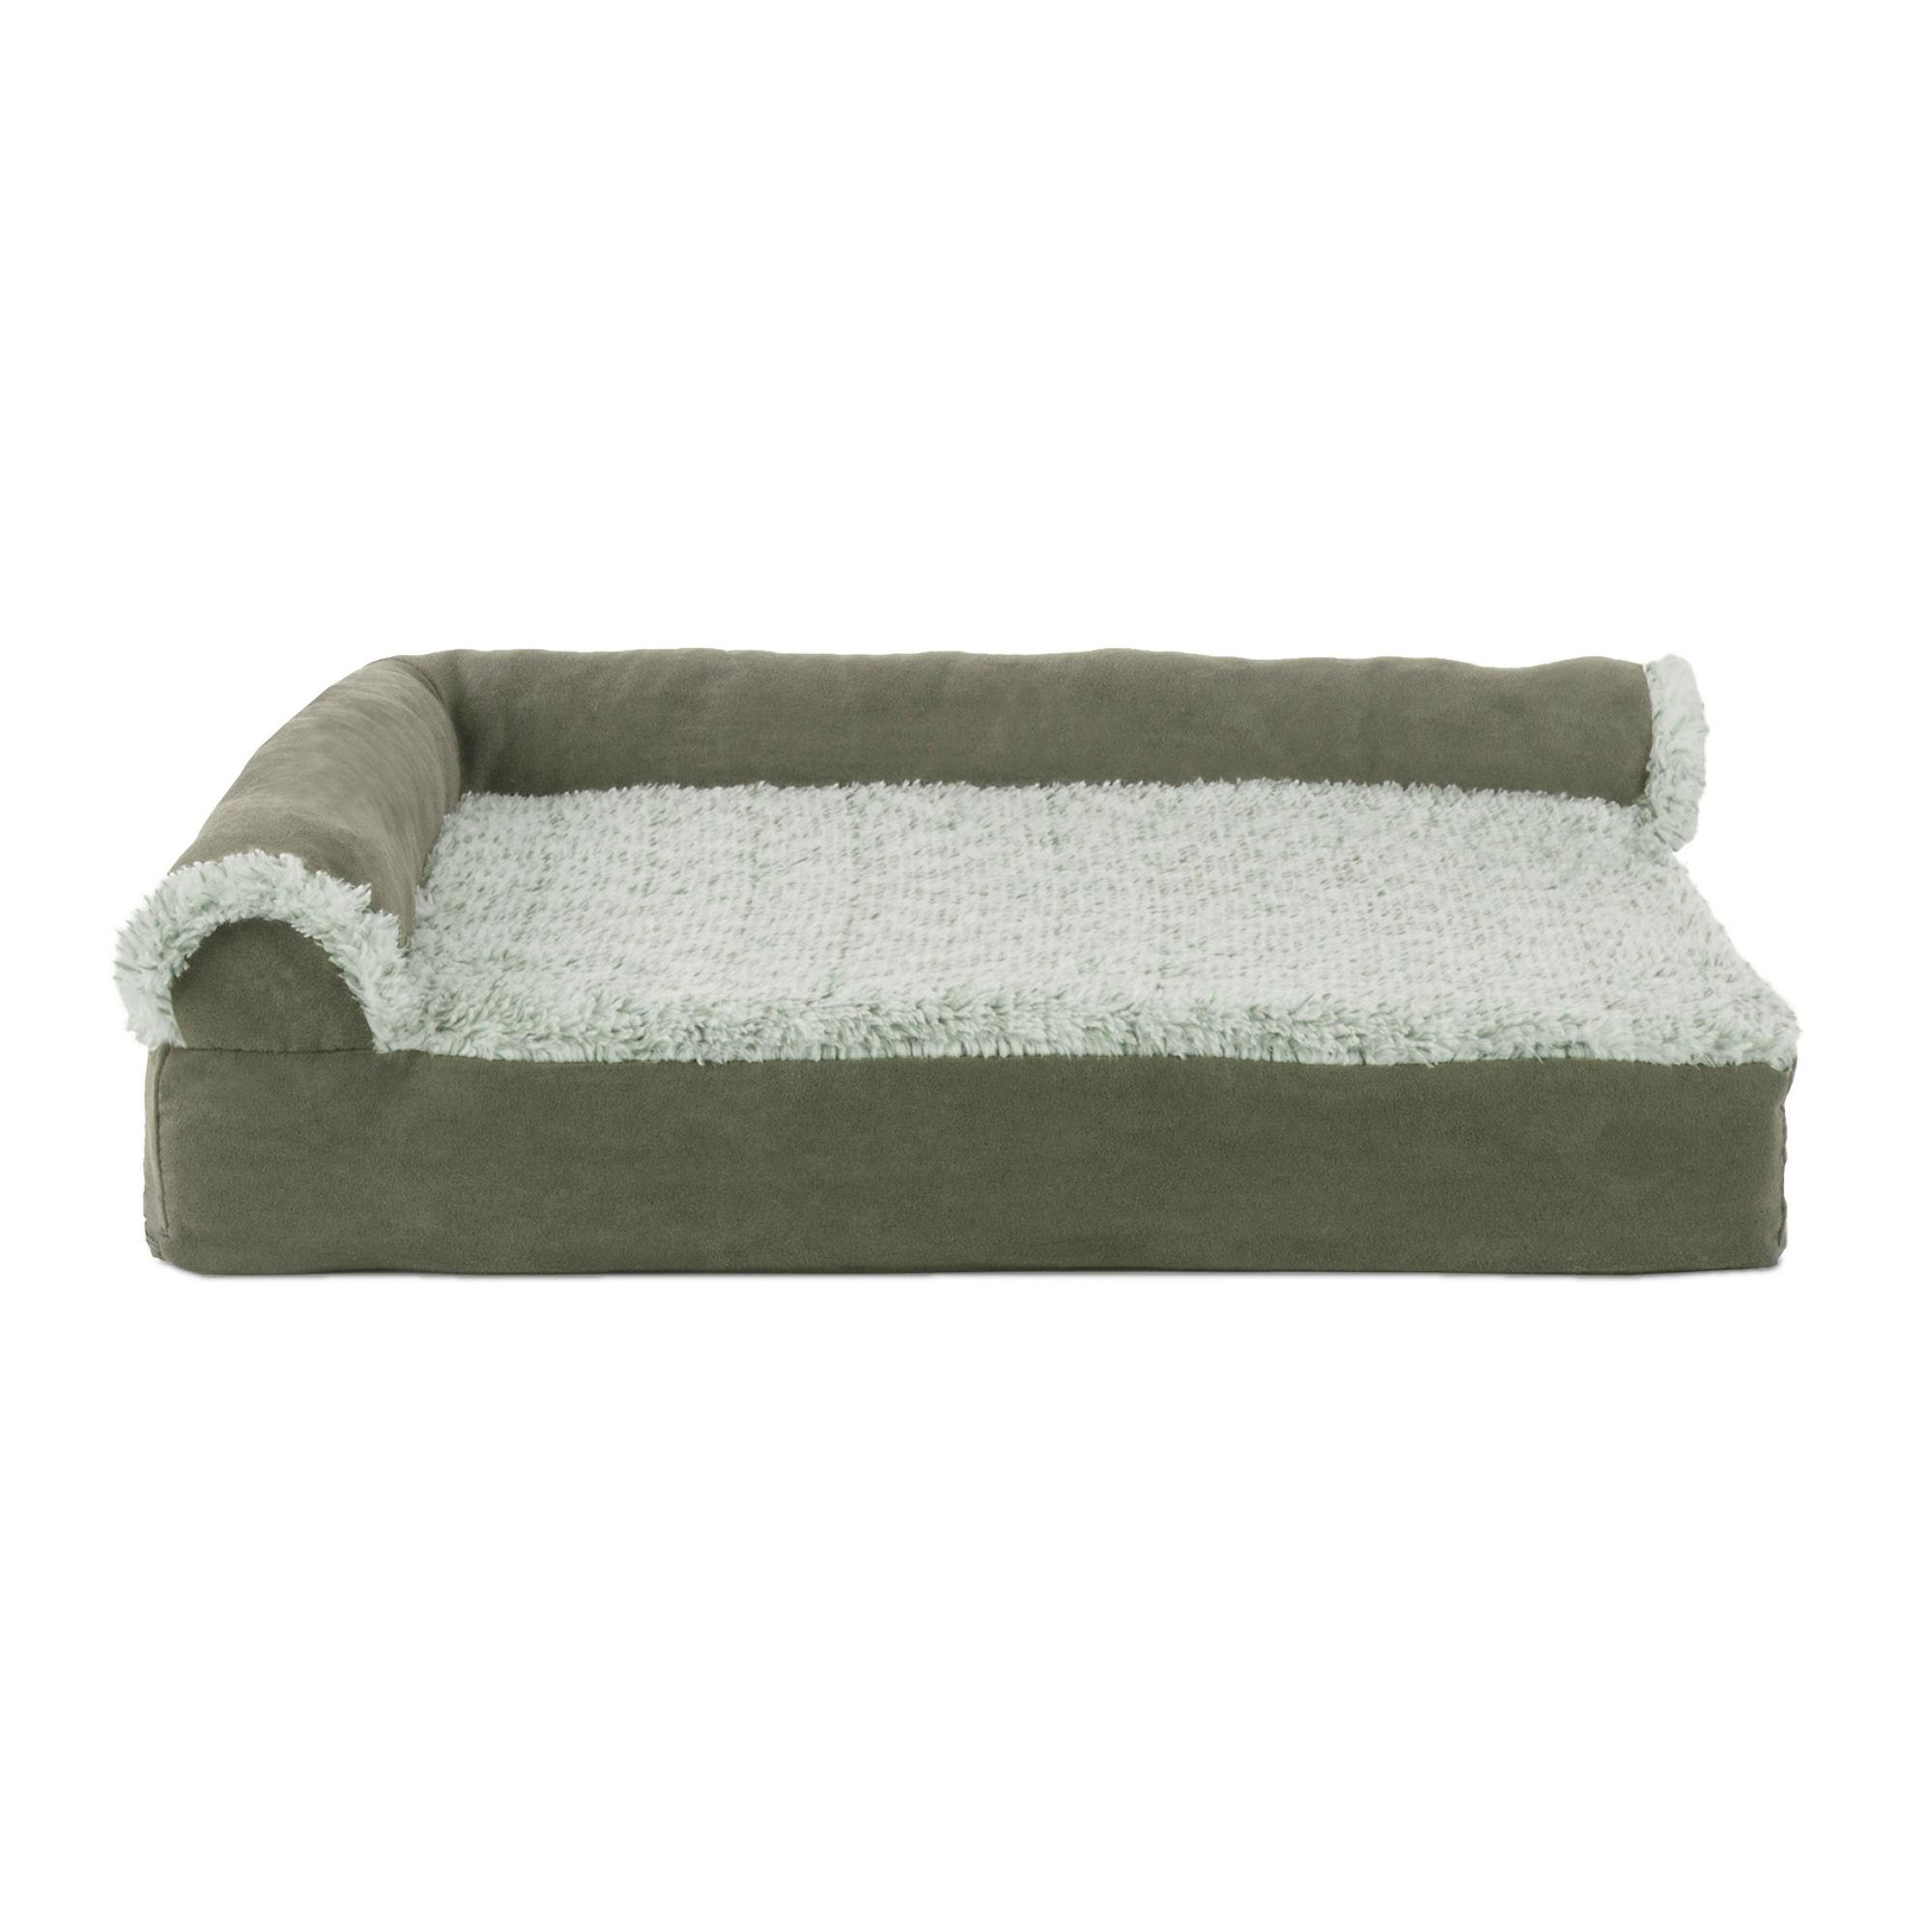 Pleasant Furhaven Two Tone Faux Fur Suede Deluxe Chaise Lounge Sofa Style Pet Bed Dark Sage Bralicious Painted Fabric Chair Ideas Braliciousco